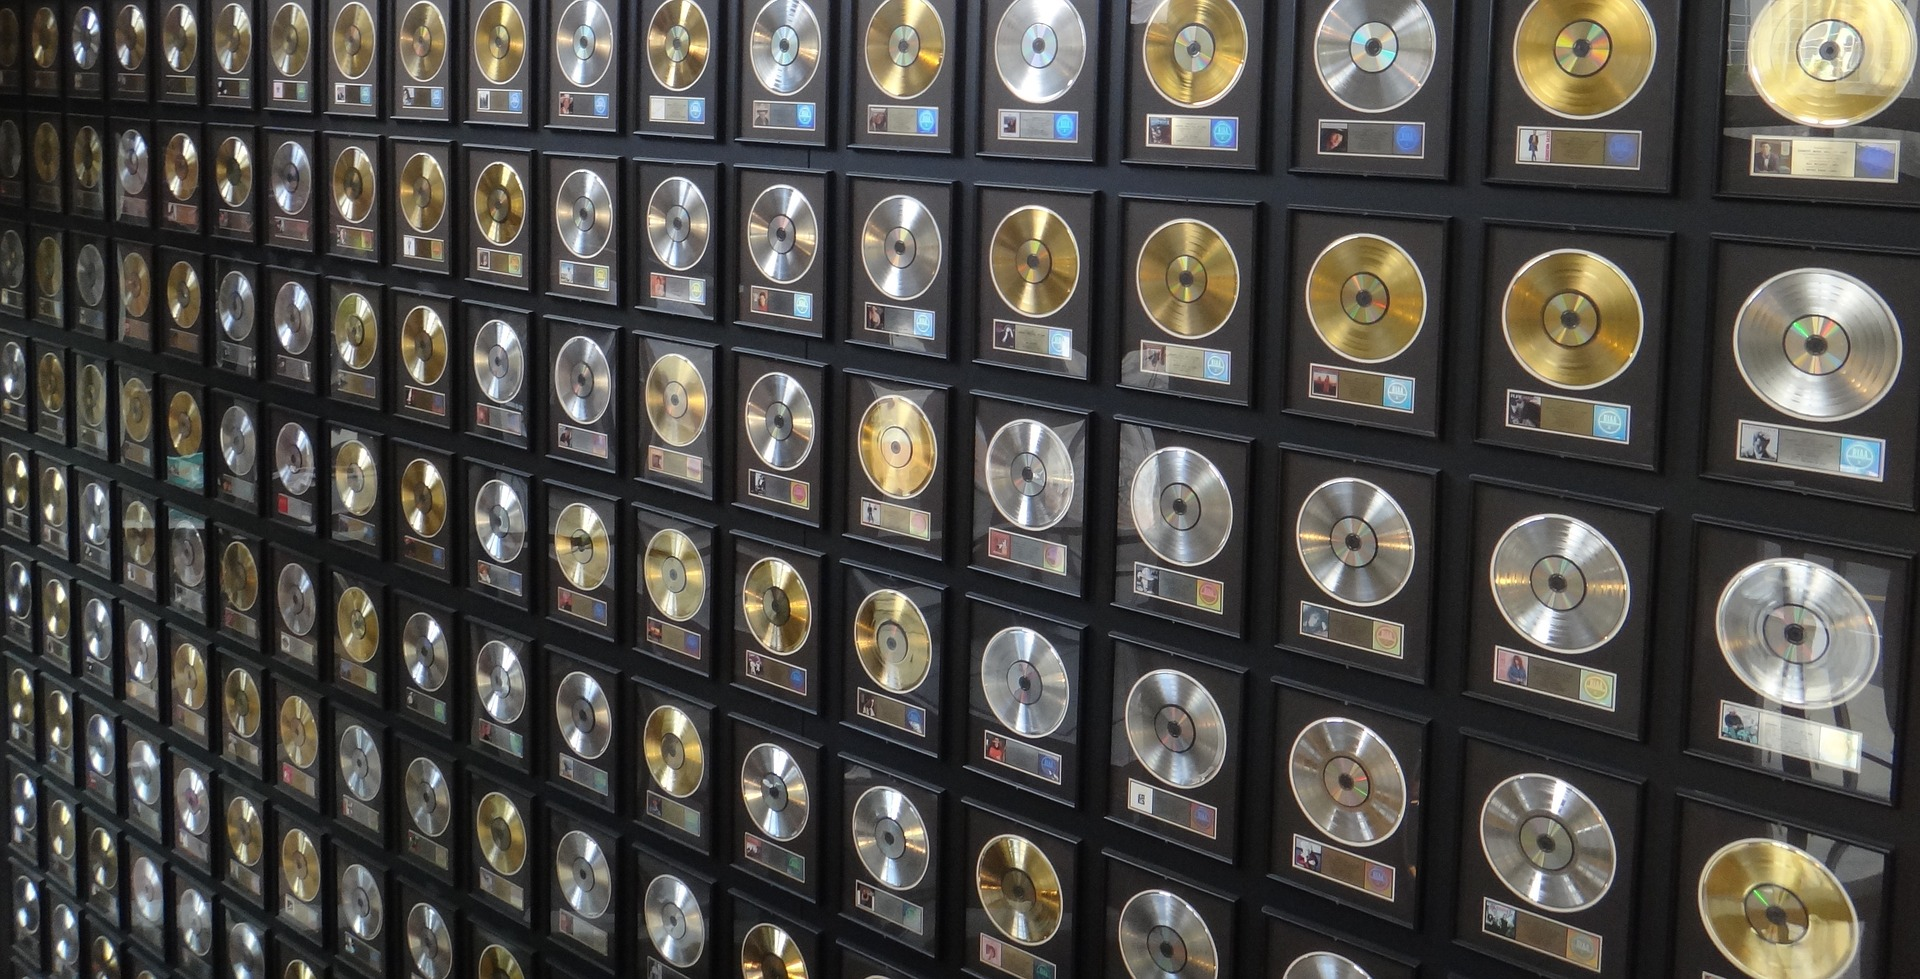 Image of gold records